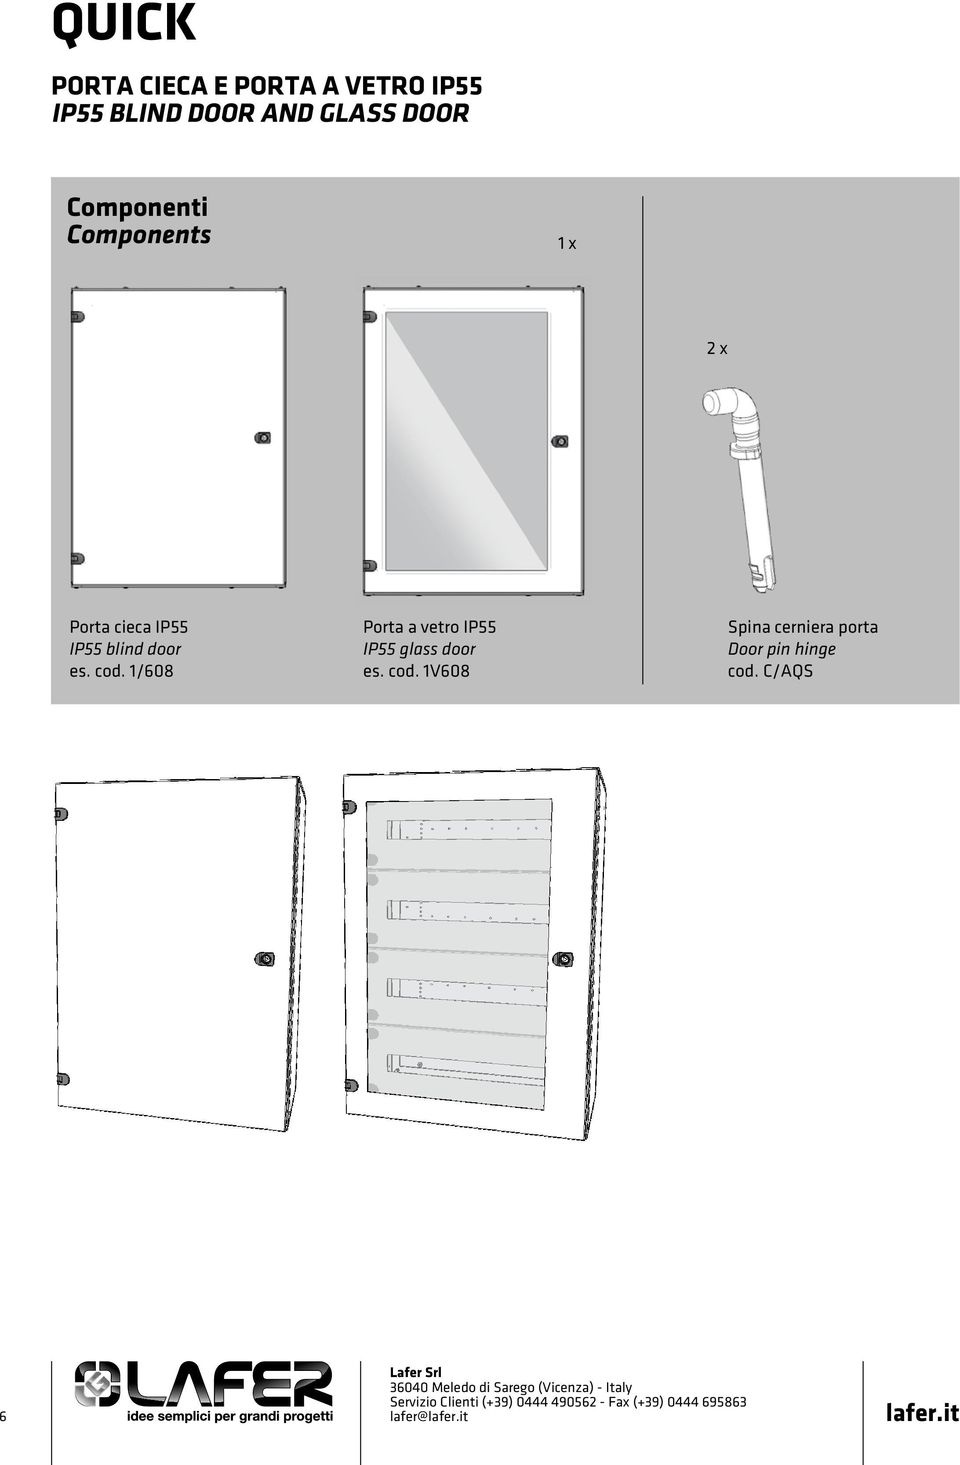 blind door es. cod. 1/608 Porta a vetro IP55 IP55 glass door es.